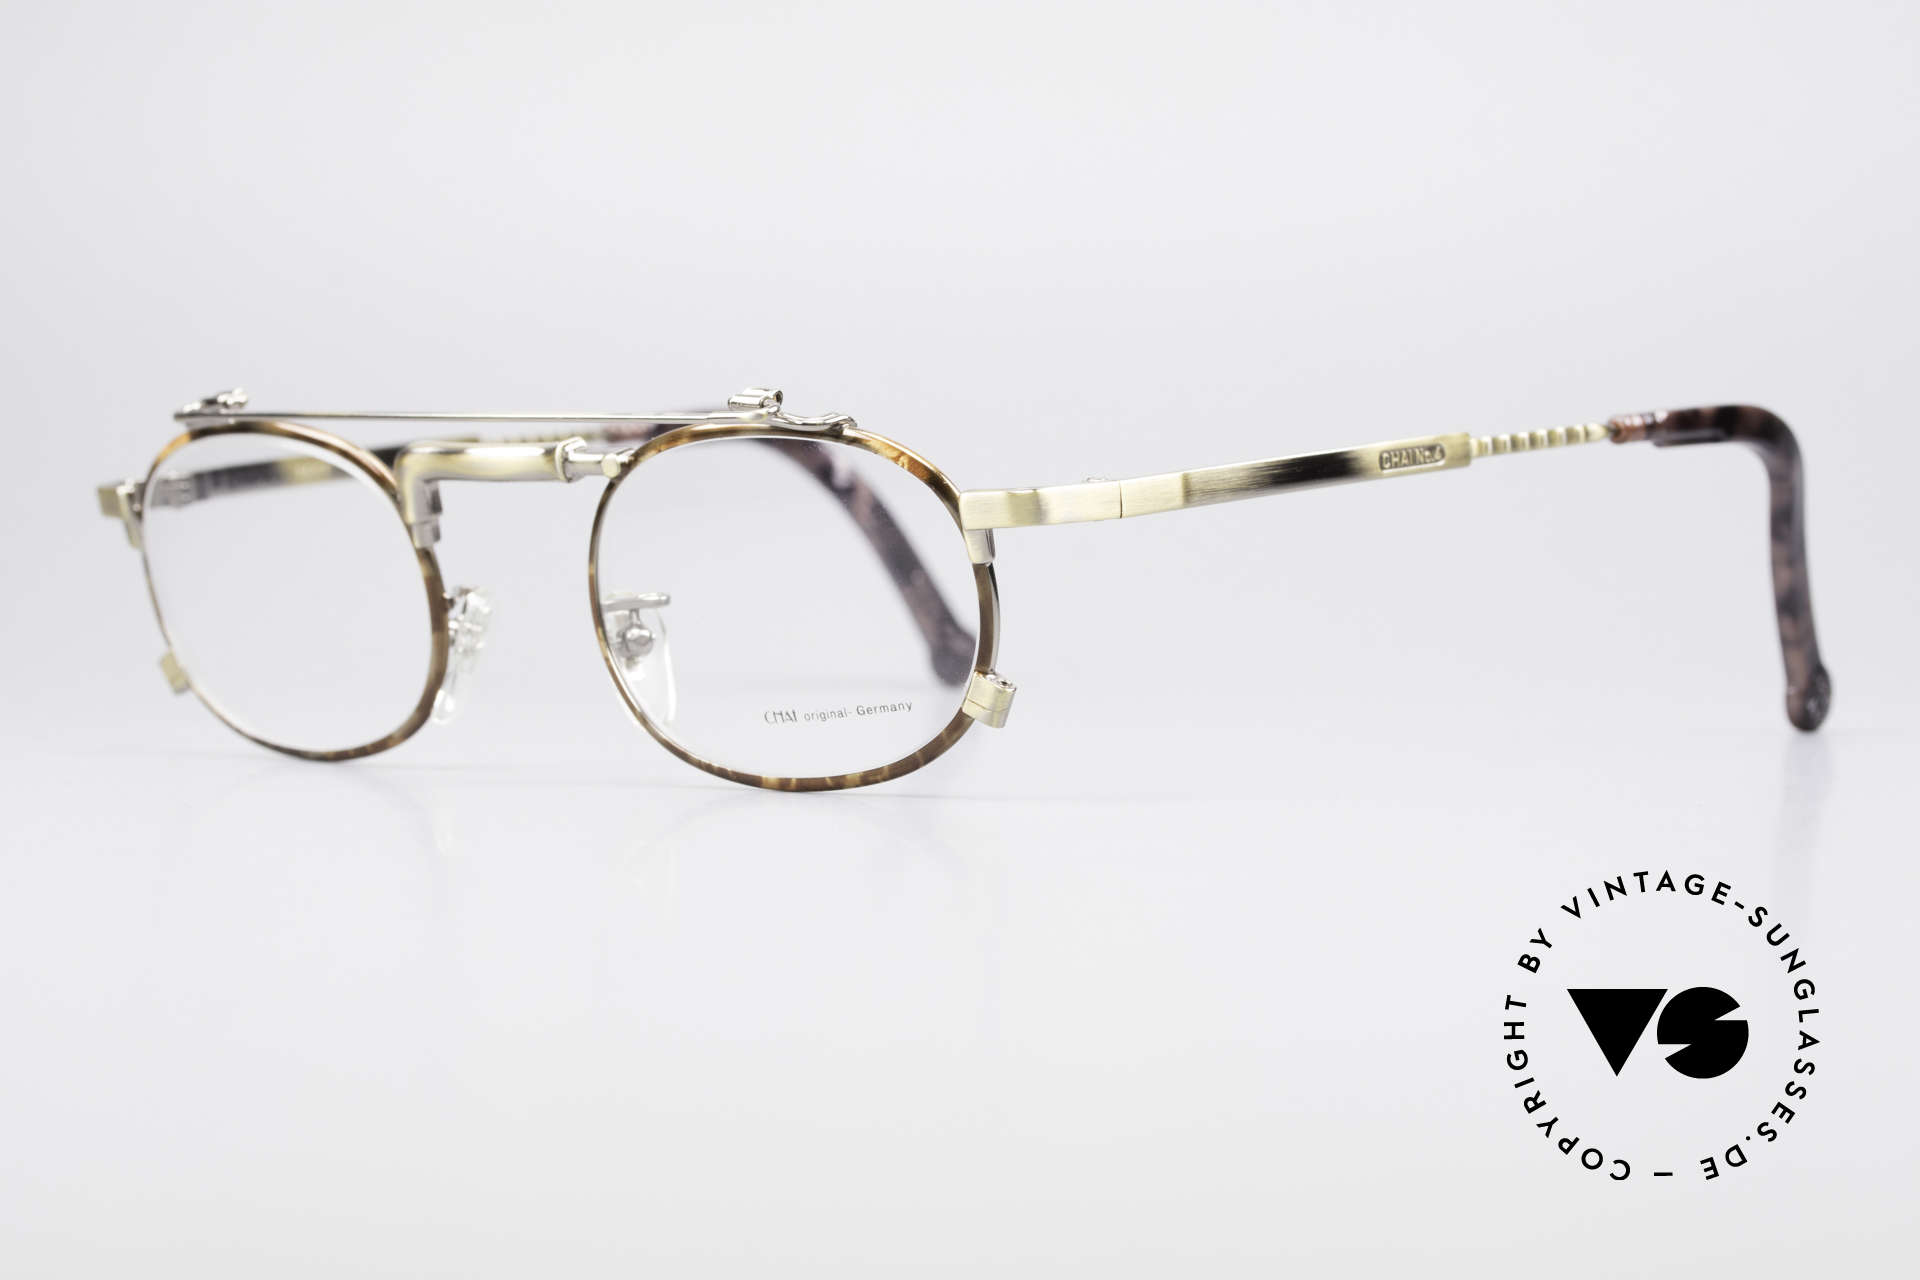 Chai No4 Oval Industrial Vintage Eyeglasses, thus, opticans often called this model 'tap glasses', Made for Men and Women